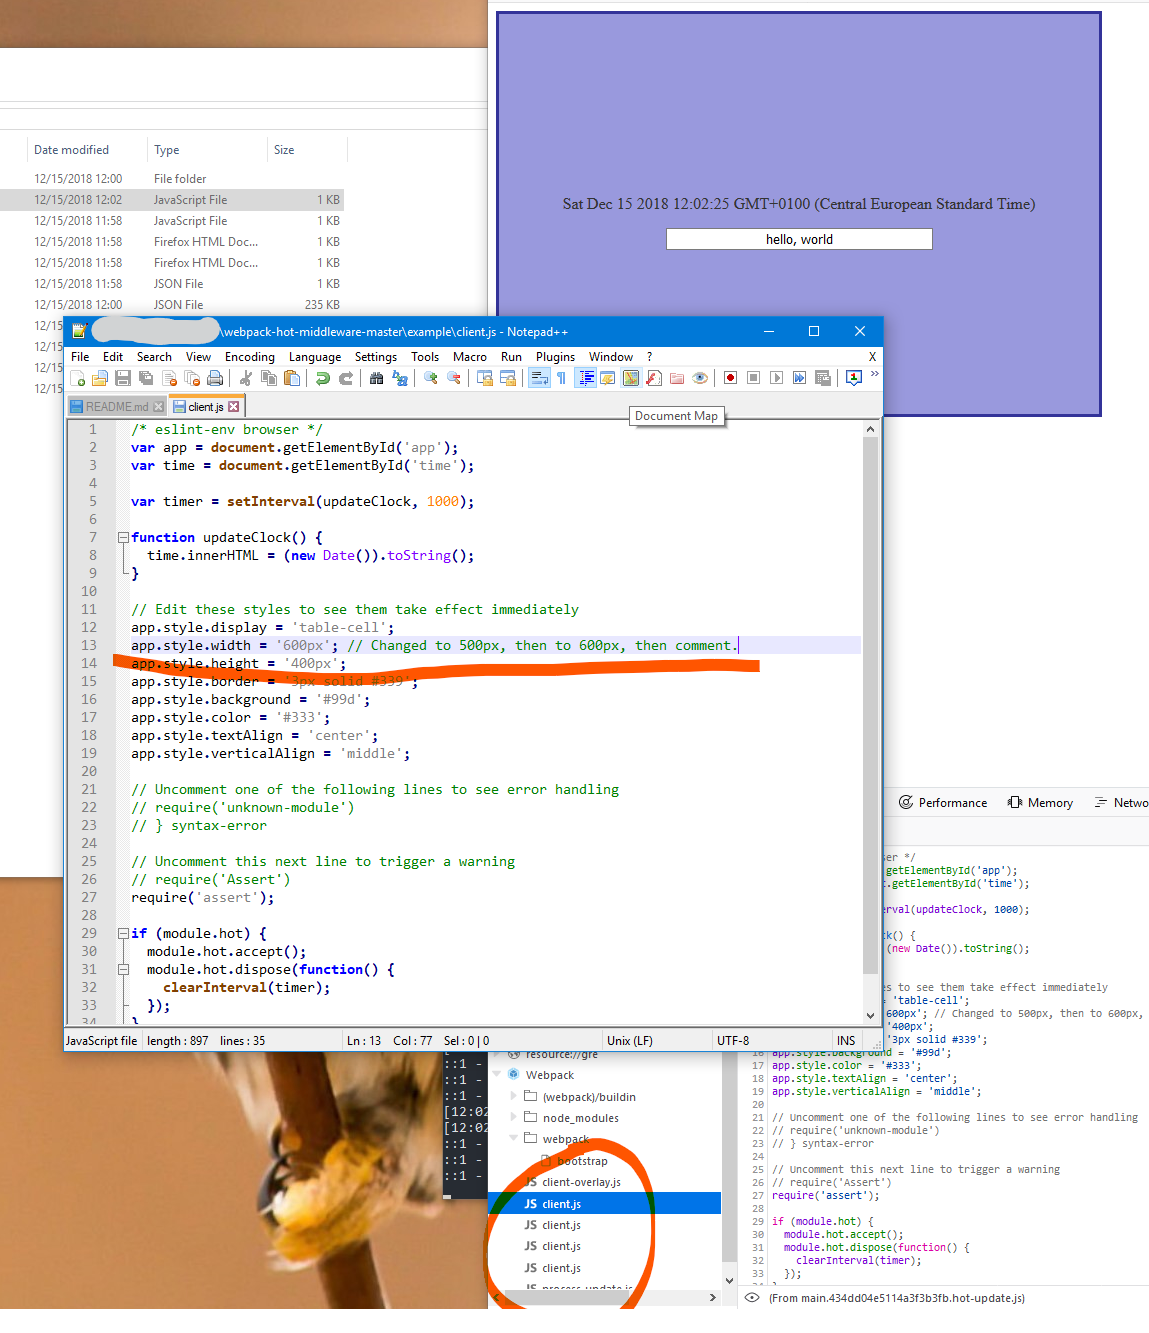 New source entries in Firefox Developer Tools after each HMR